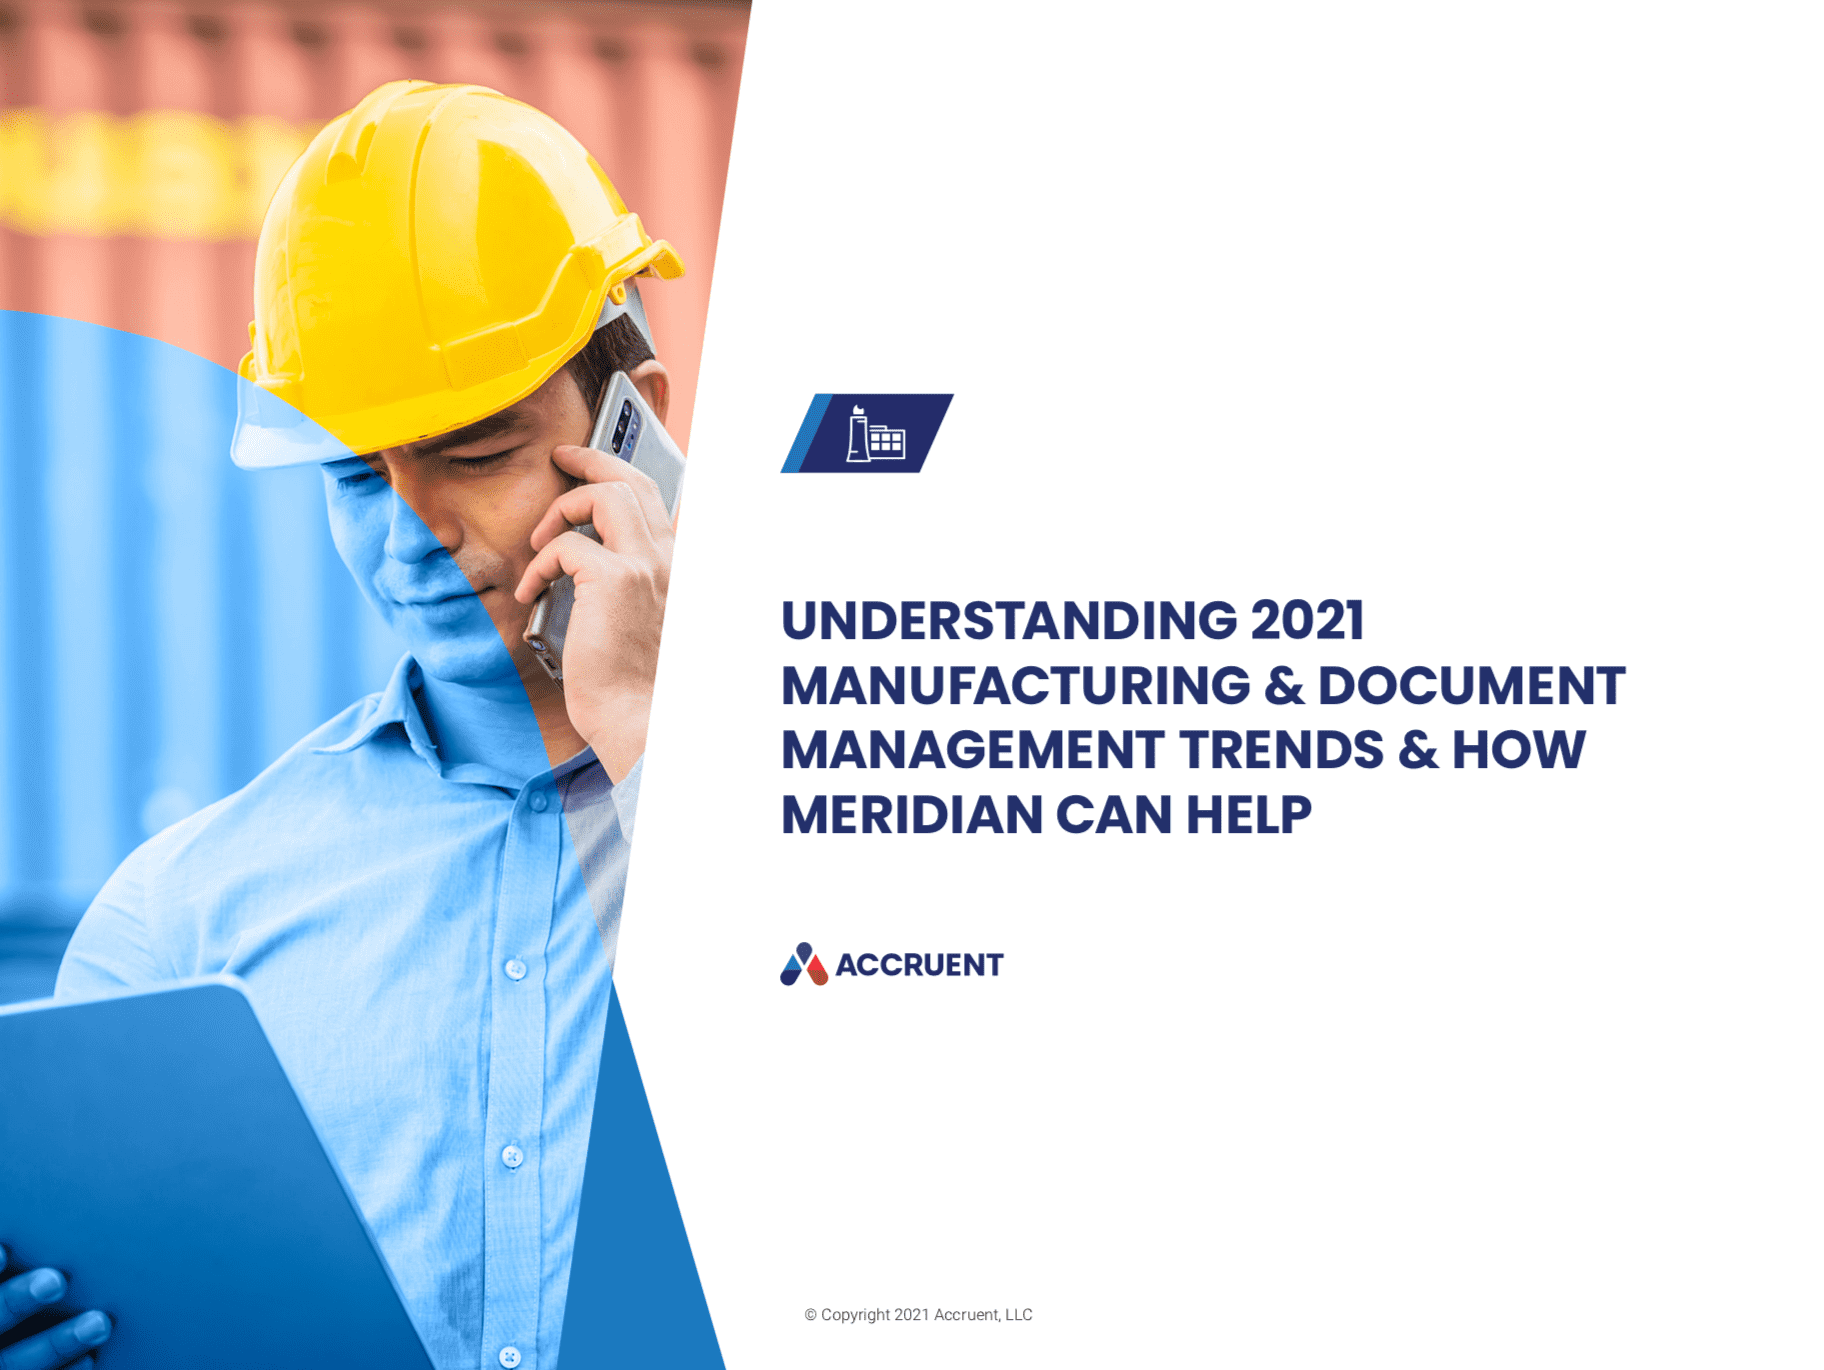 Accruent - Resources - eBooks - Understanding 2021 Manufacturing & Document Management Trends & How Meridian can Help - Cover Image